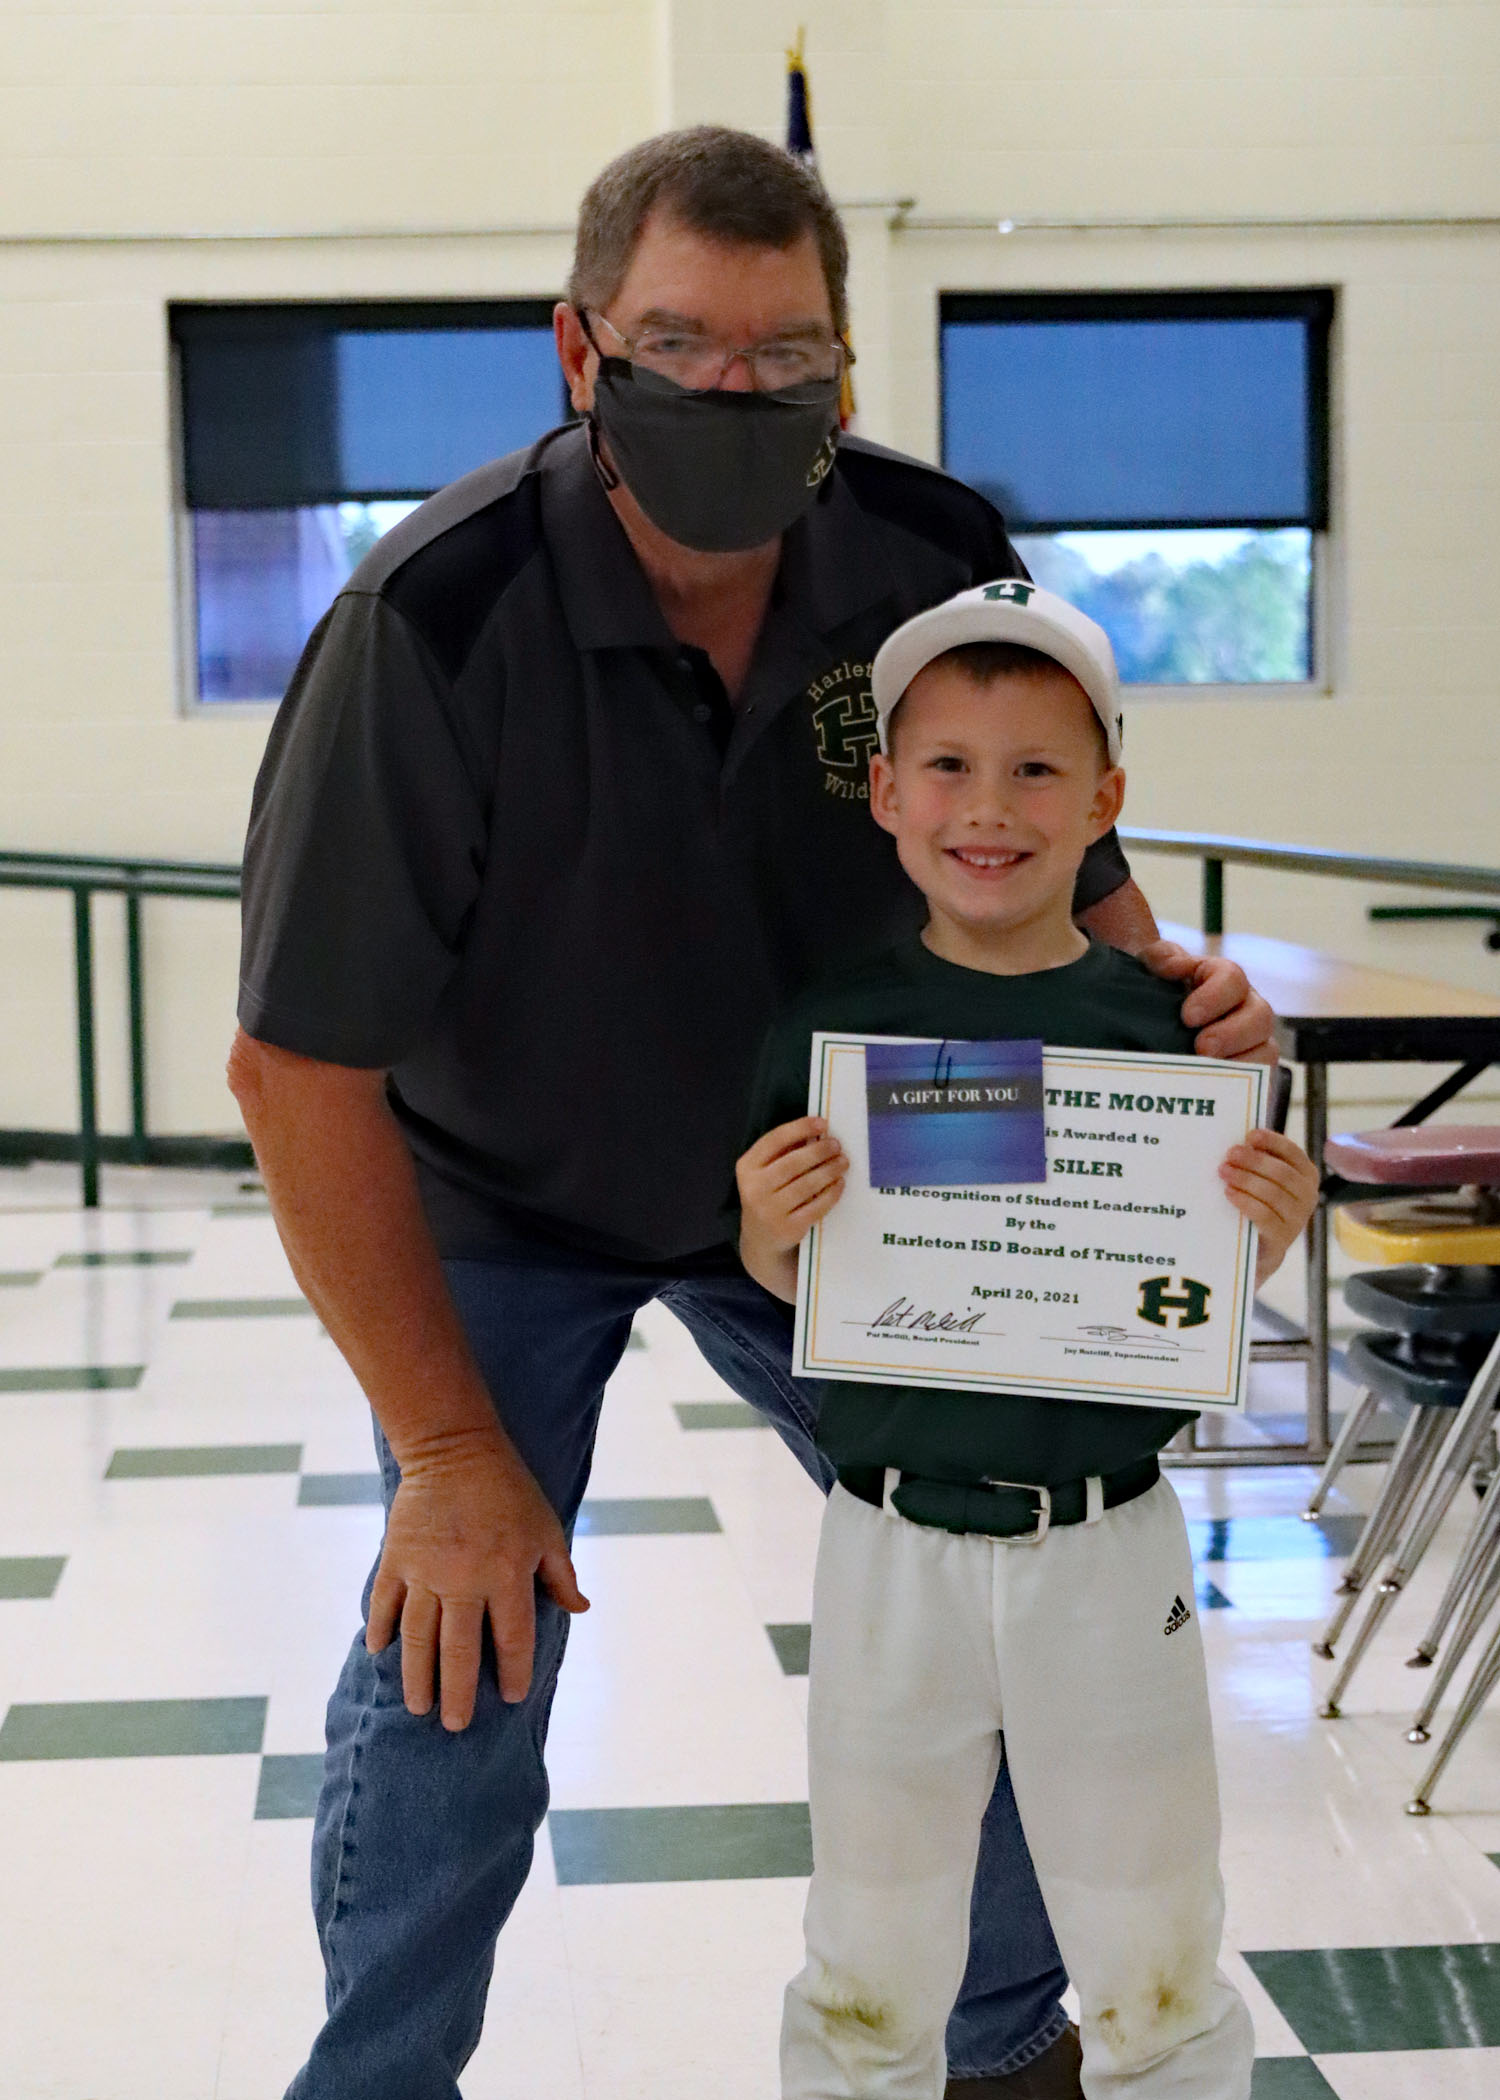 April Student of the Month Griffin Siler!